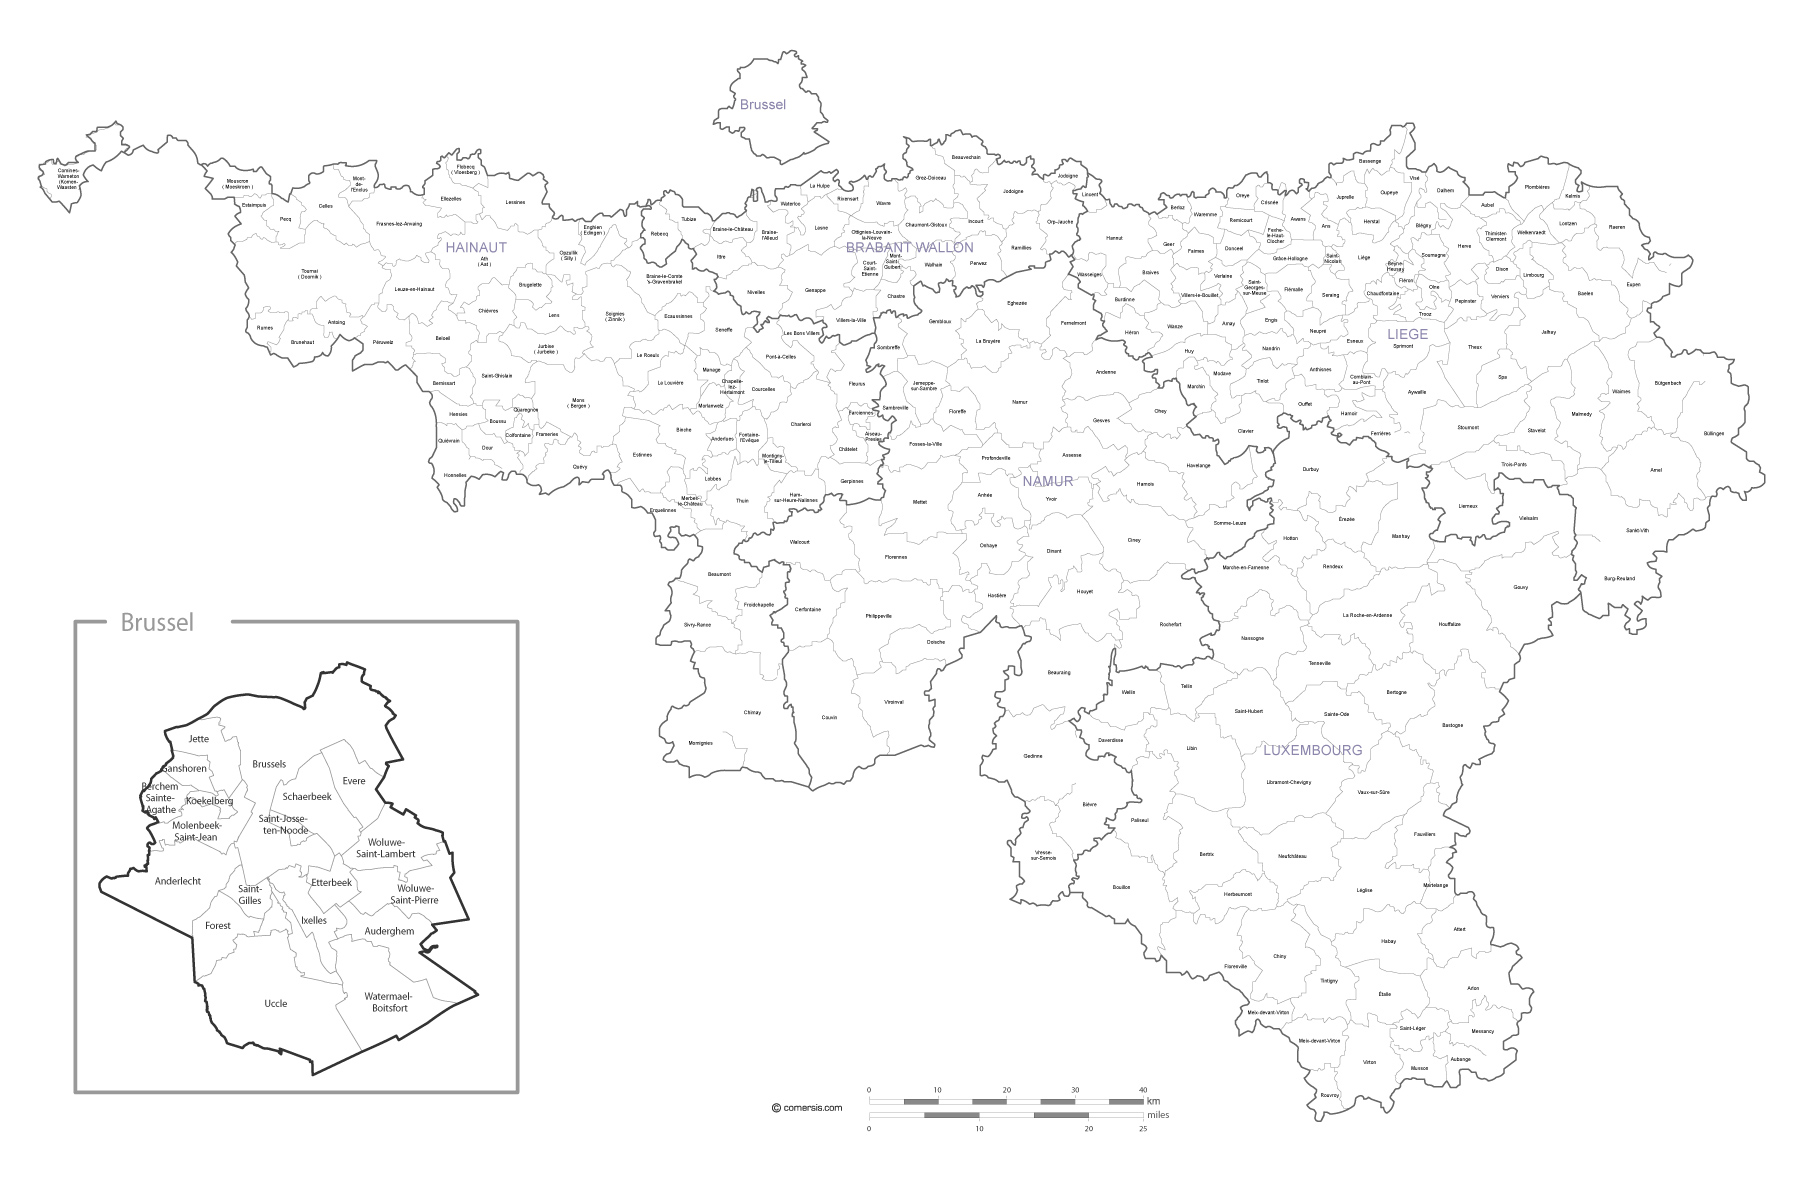 Carte des communes de Wallonie